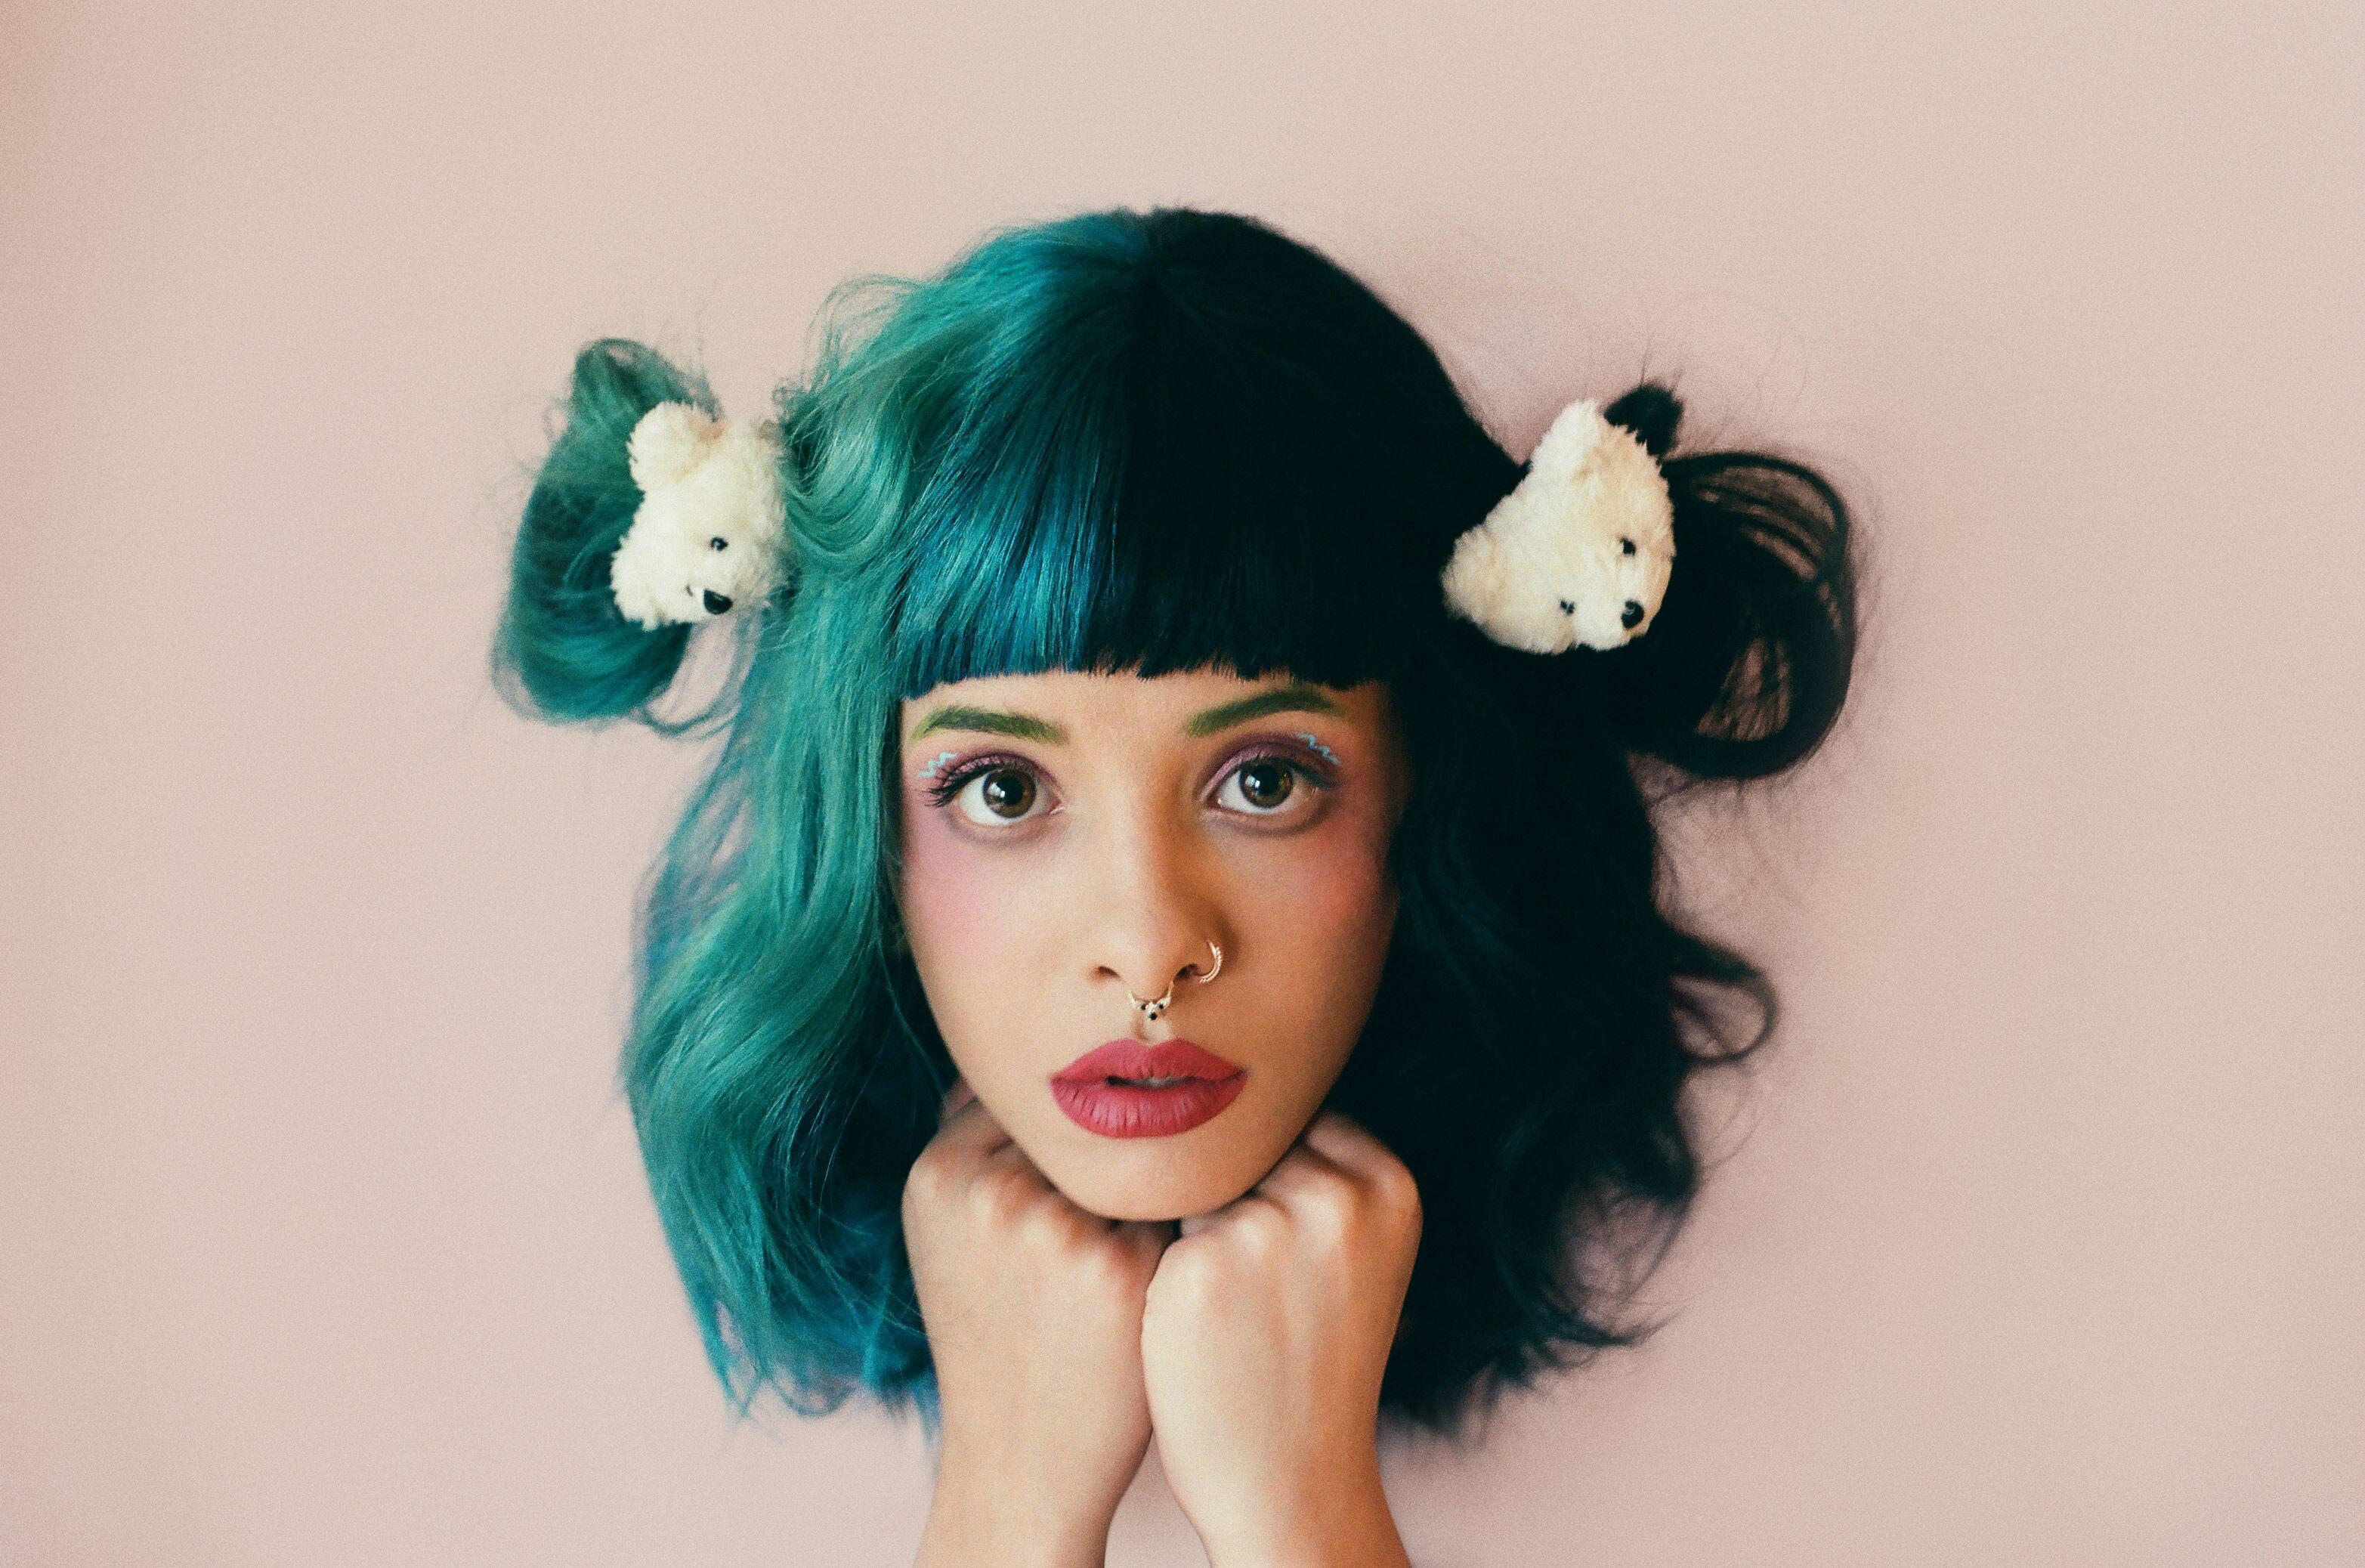 Melanie Martinez Wallpapers Image Photos Pictures Backgrounds